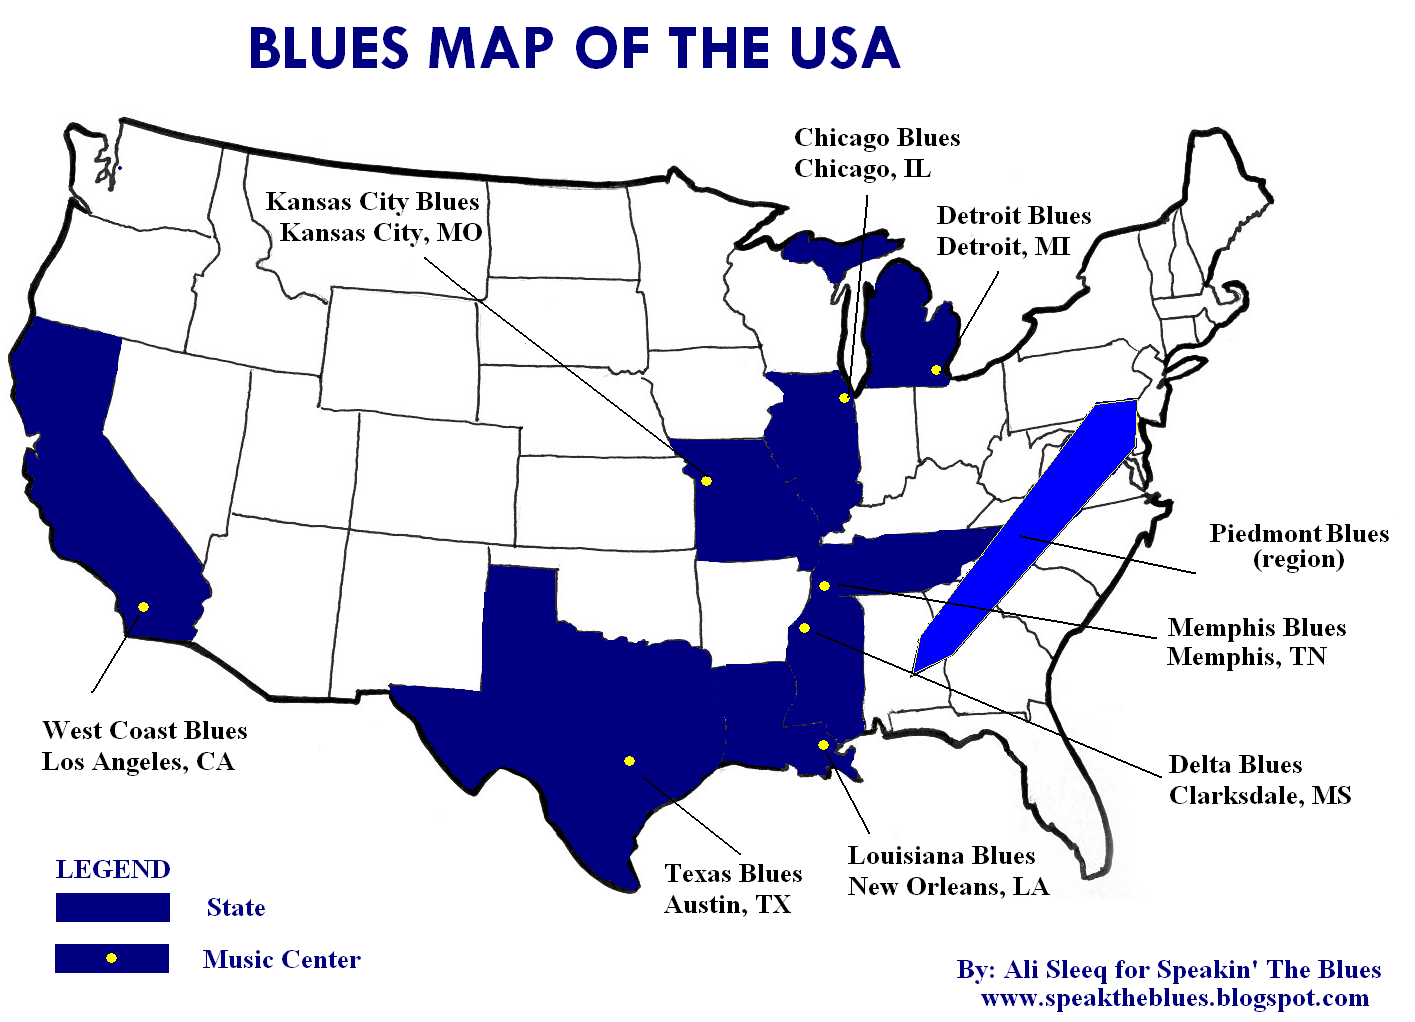 Speakin The Blues The Blues Map Of The USA - Usa map memphis